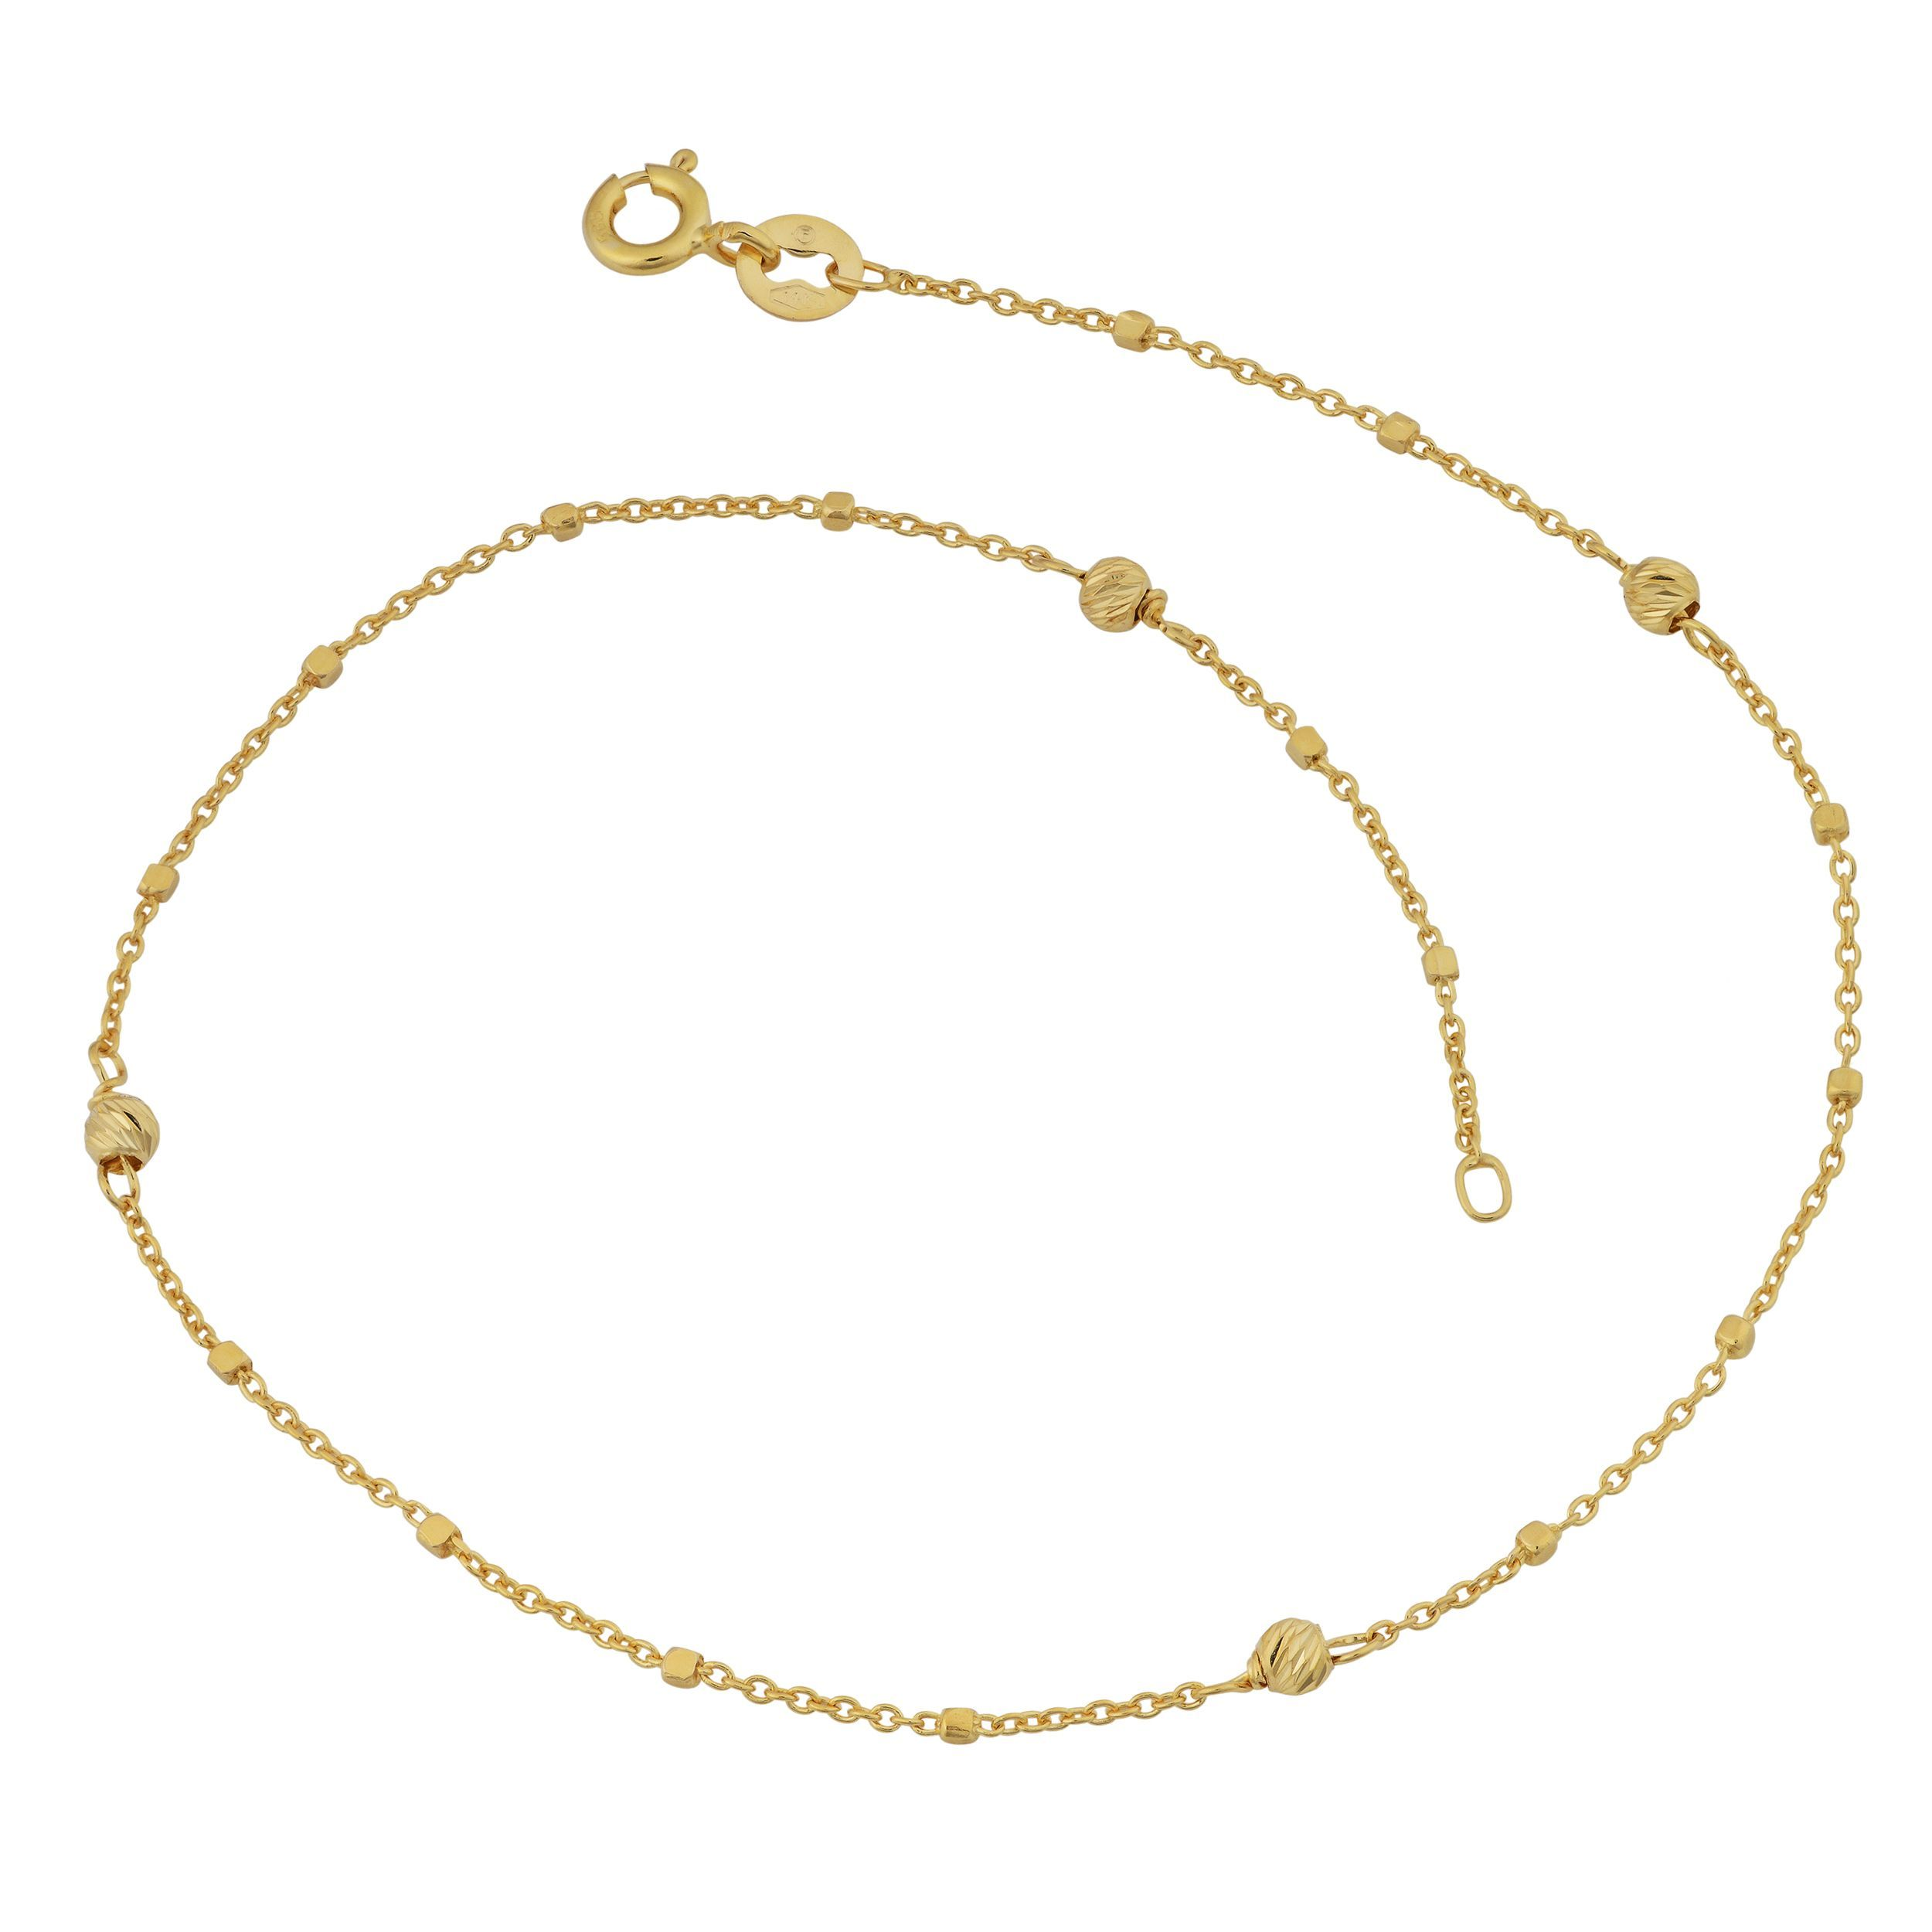 shopify jewellery melissa gold anklet bracelet harris station products full diamond white